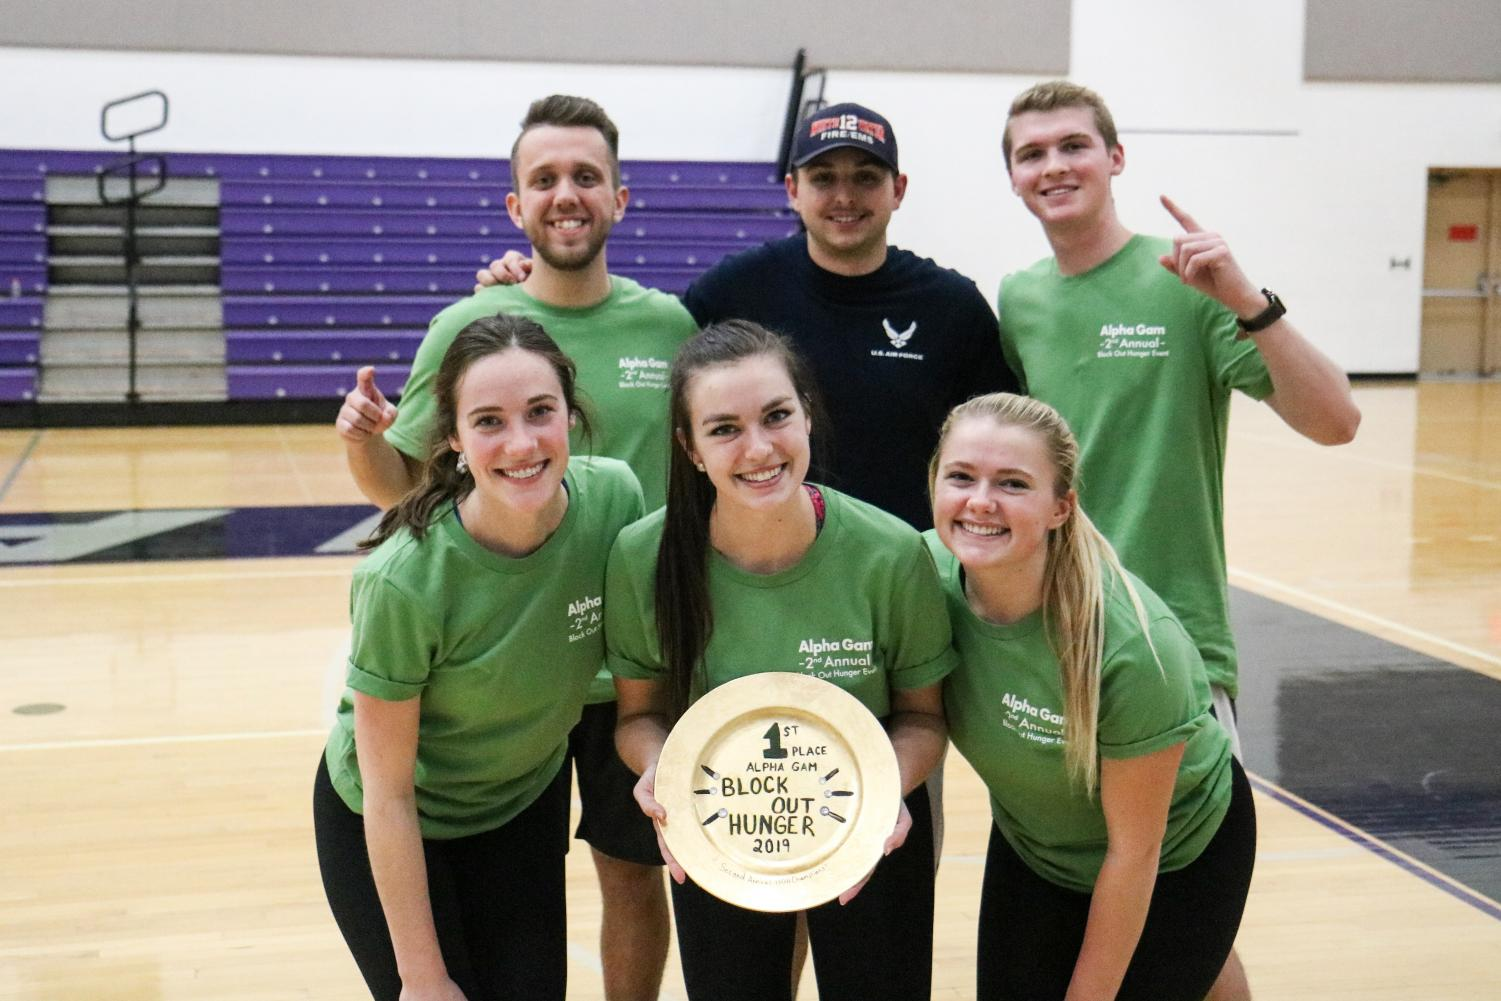 Alpha Gamma Delta's 2nd Annual Block Out Hunger volleyball tournament first place team poses for a championship photo.